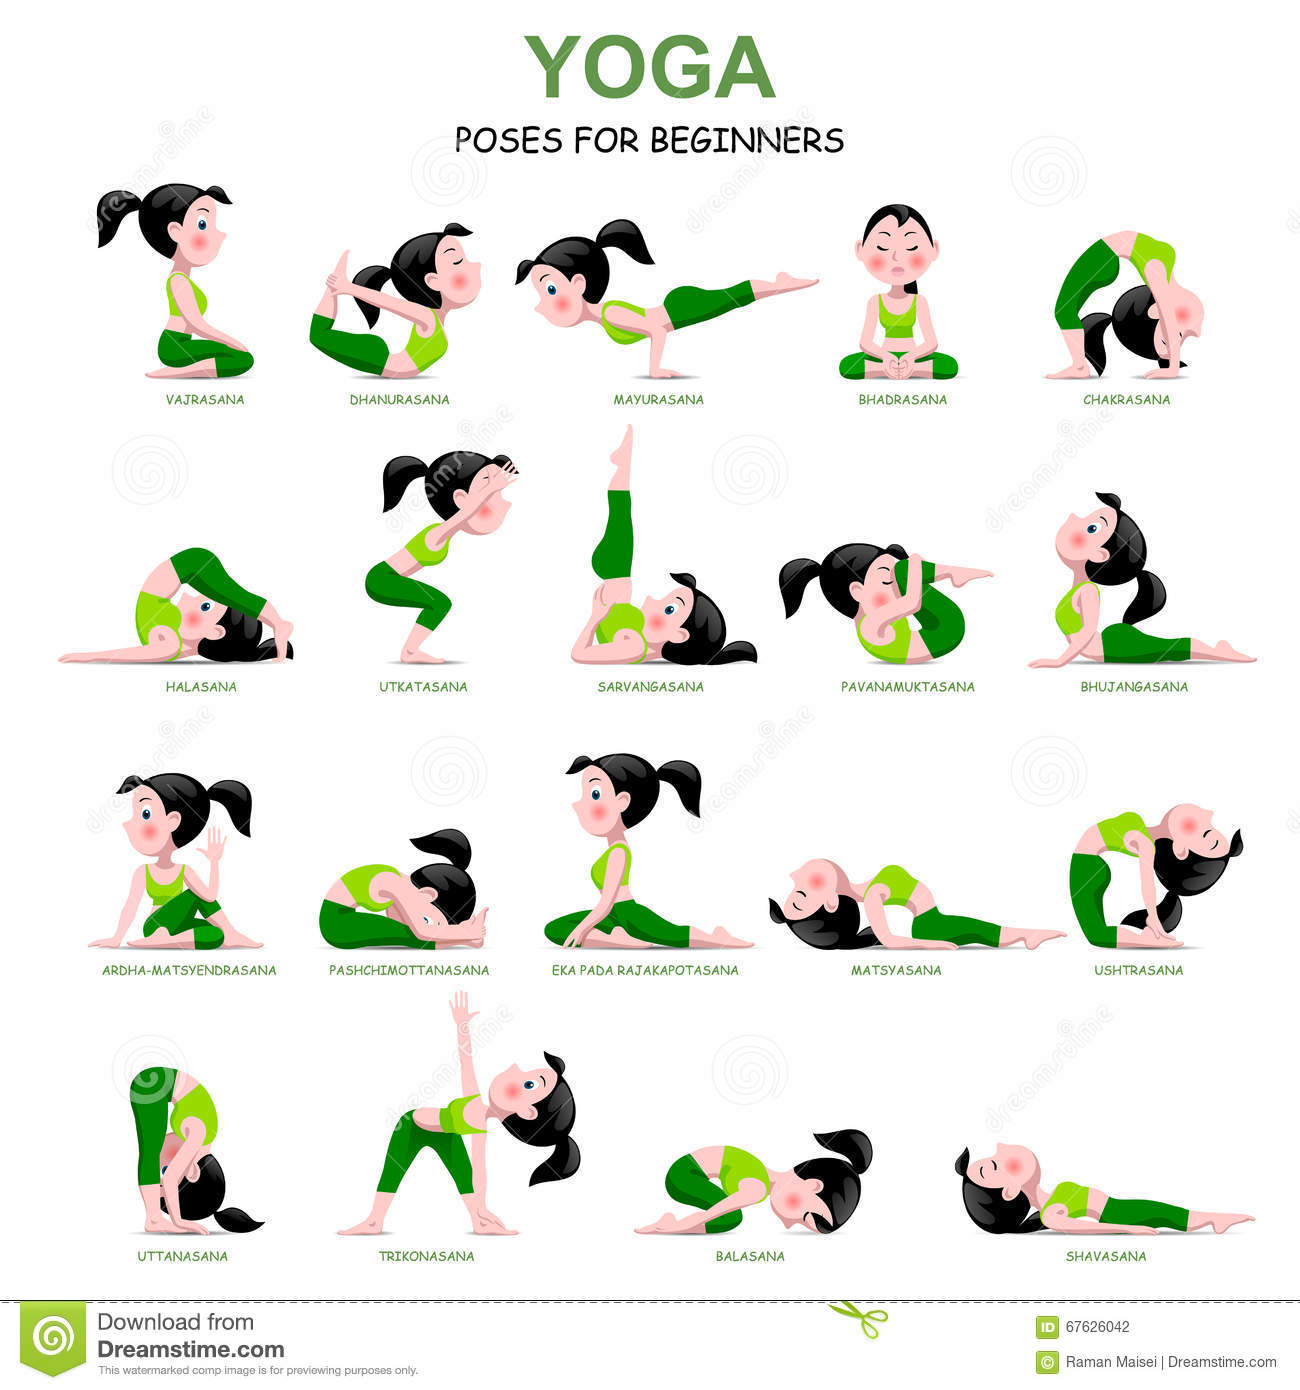 Cartoon Girl In Yoga Poses With Titles For Beginners Isolated On